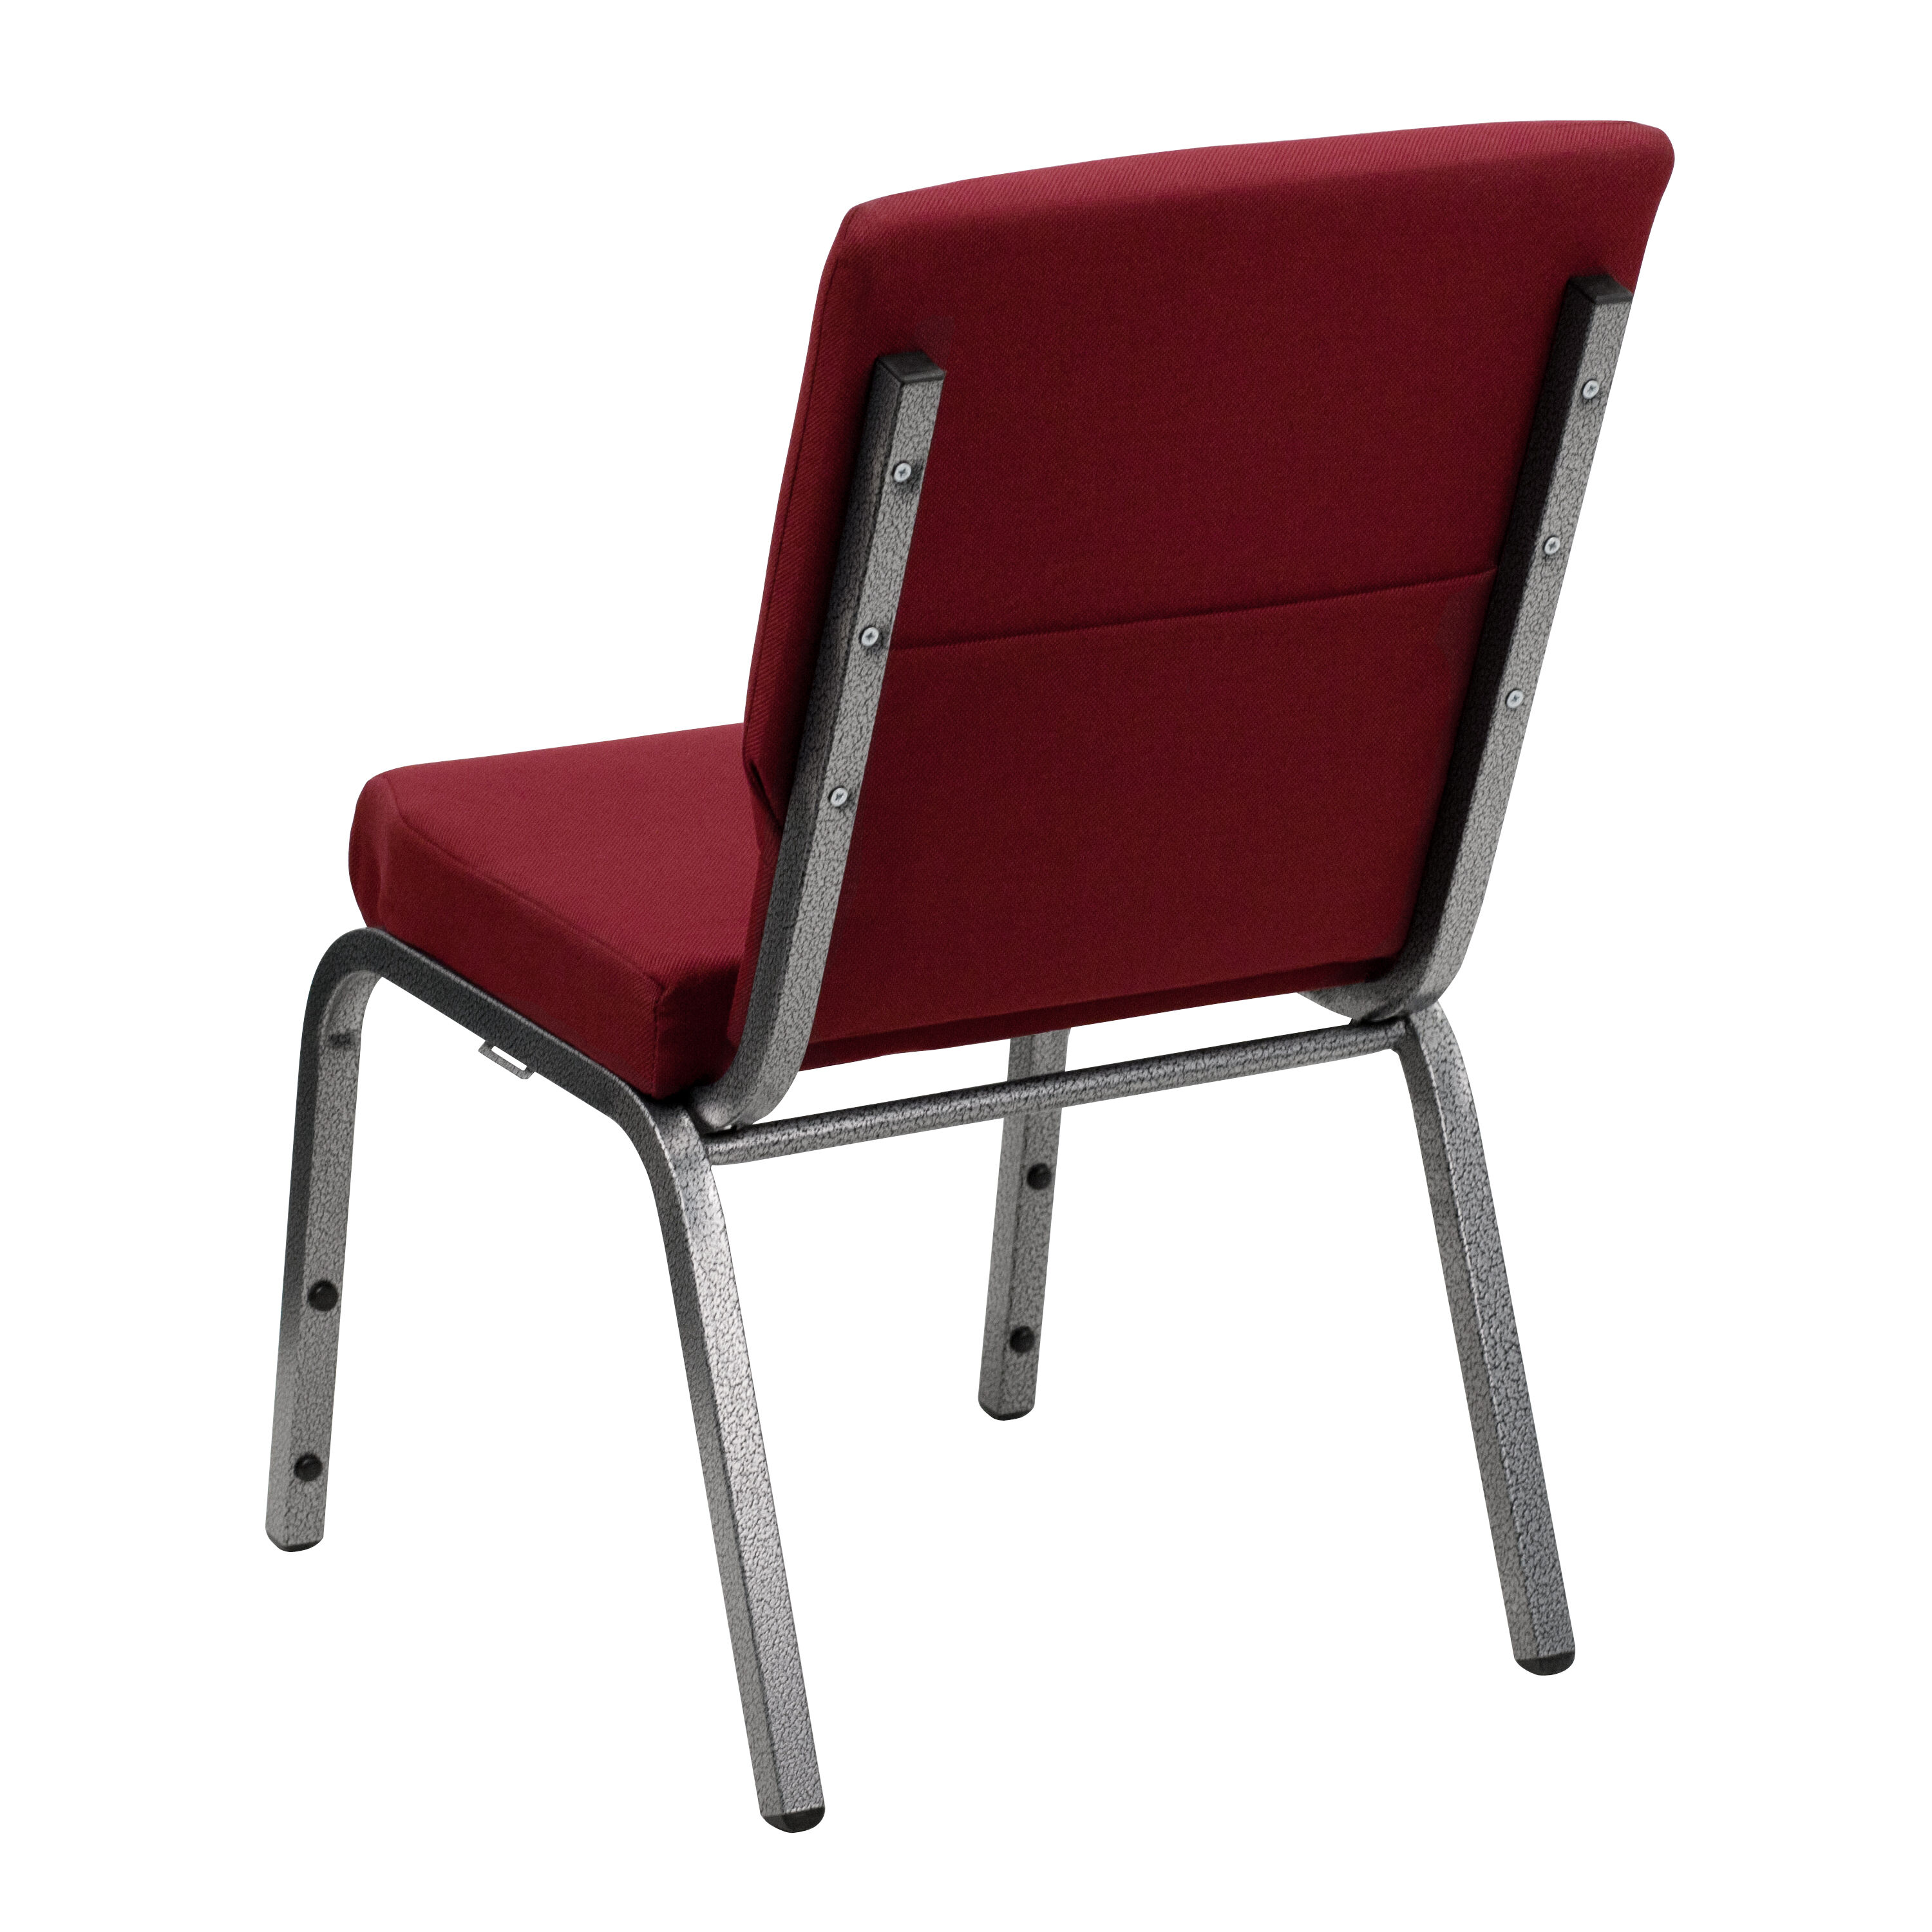 Exceptionnel Burgundy Fabric Church Chair XU CH 60096 BY SILV GG | ChurchChairs4Less.com